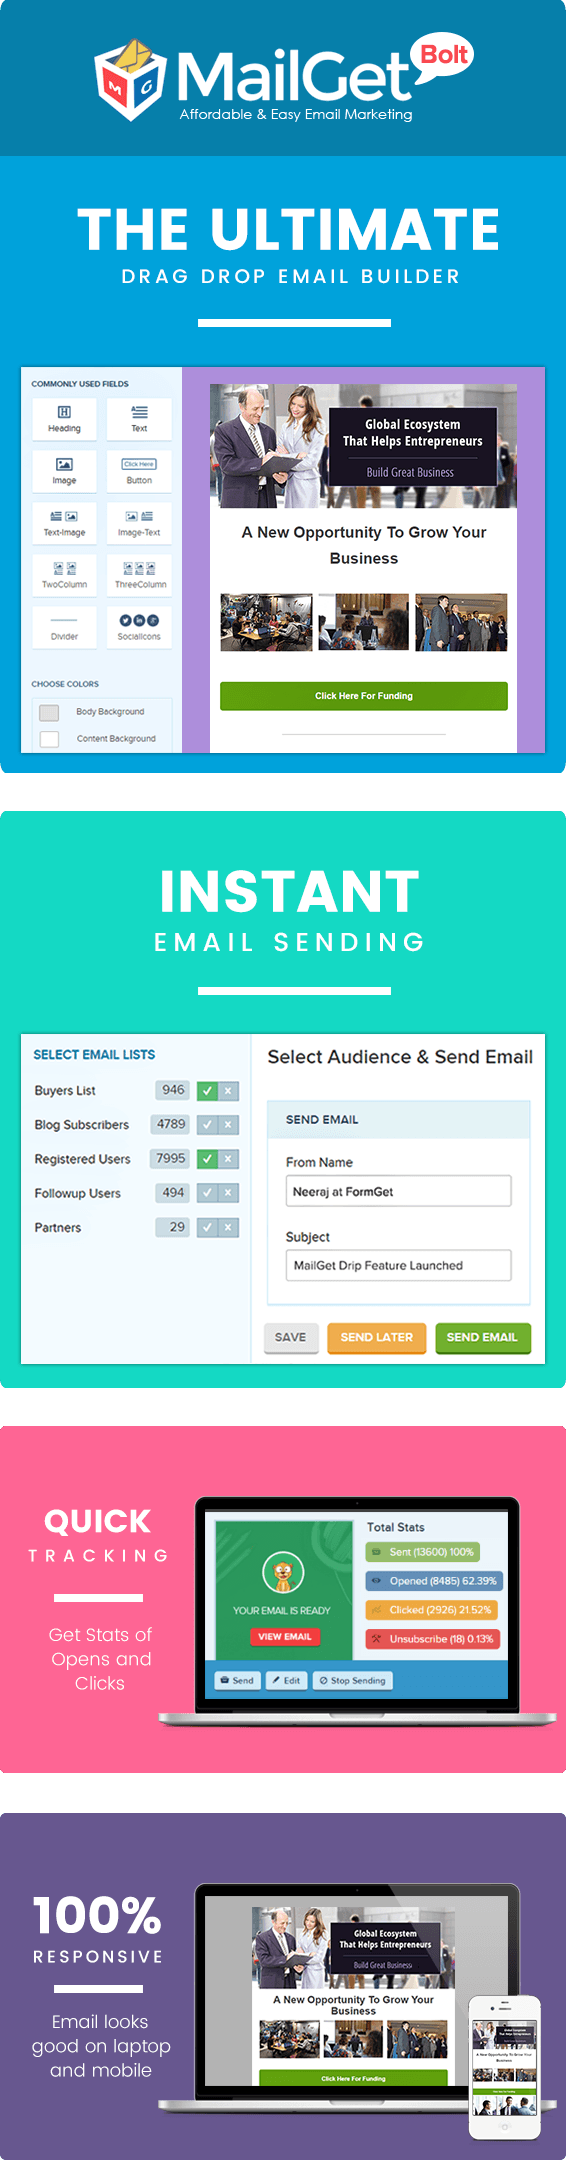 Email-Marketing-For-New-Businesses1